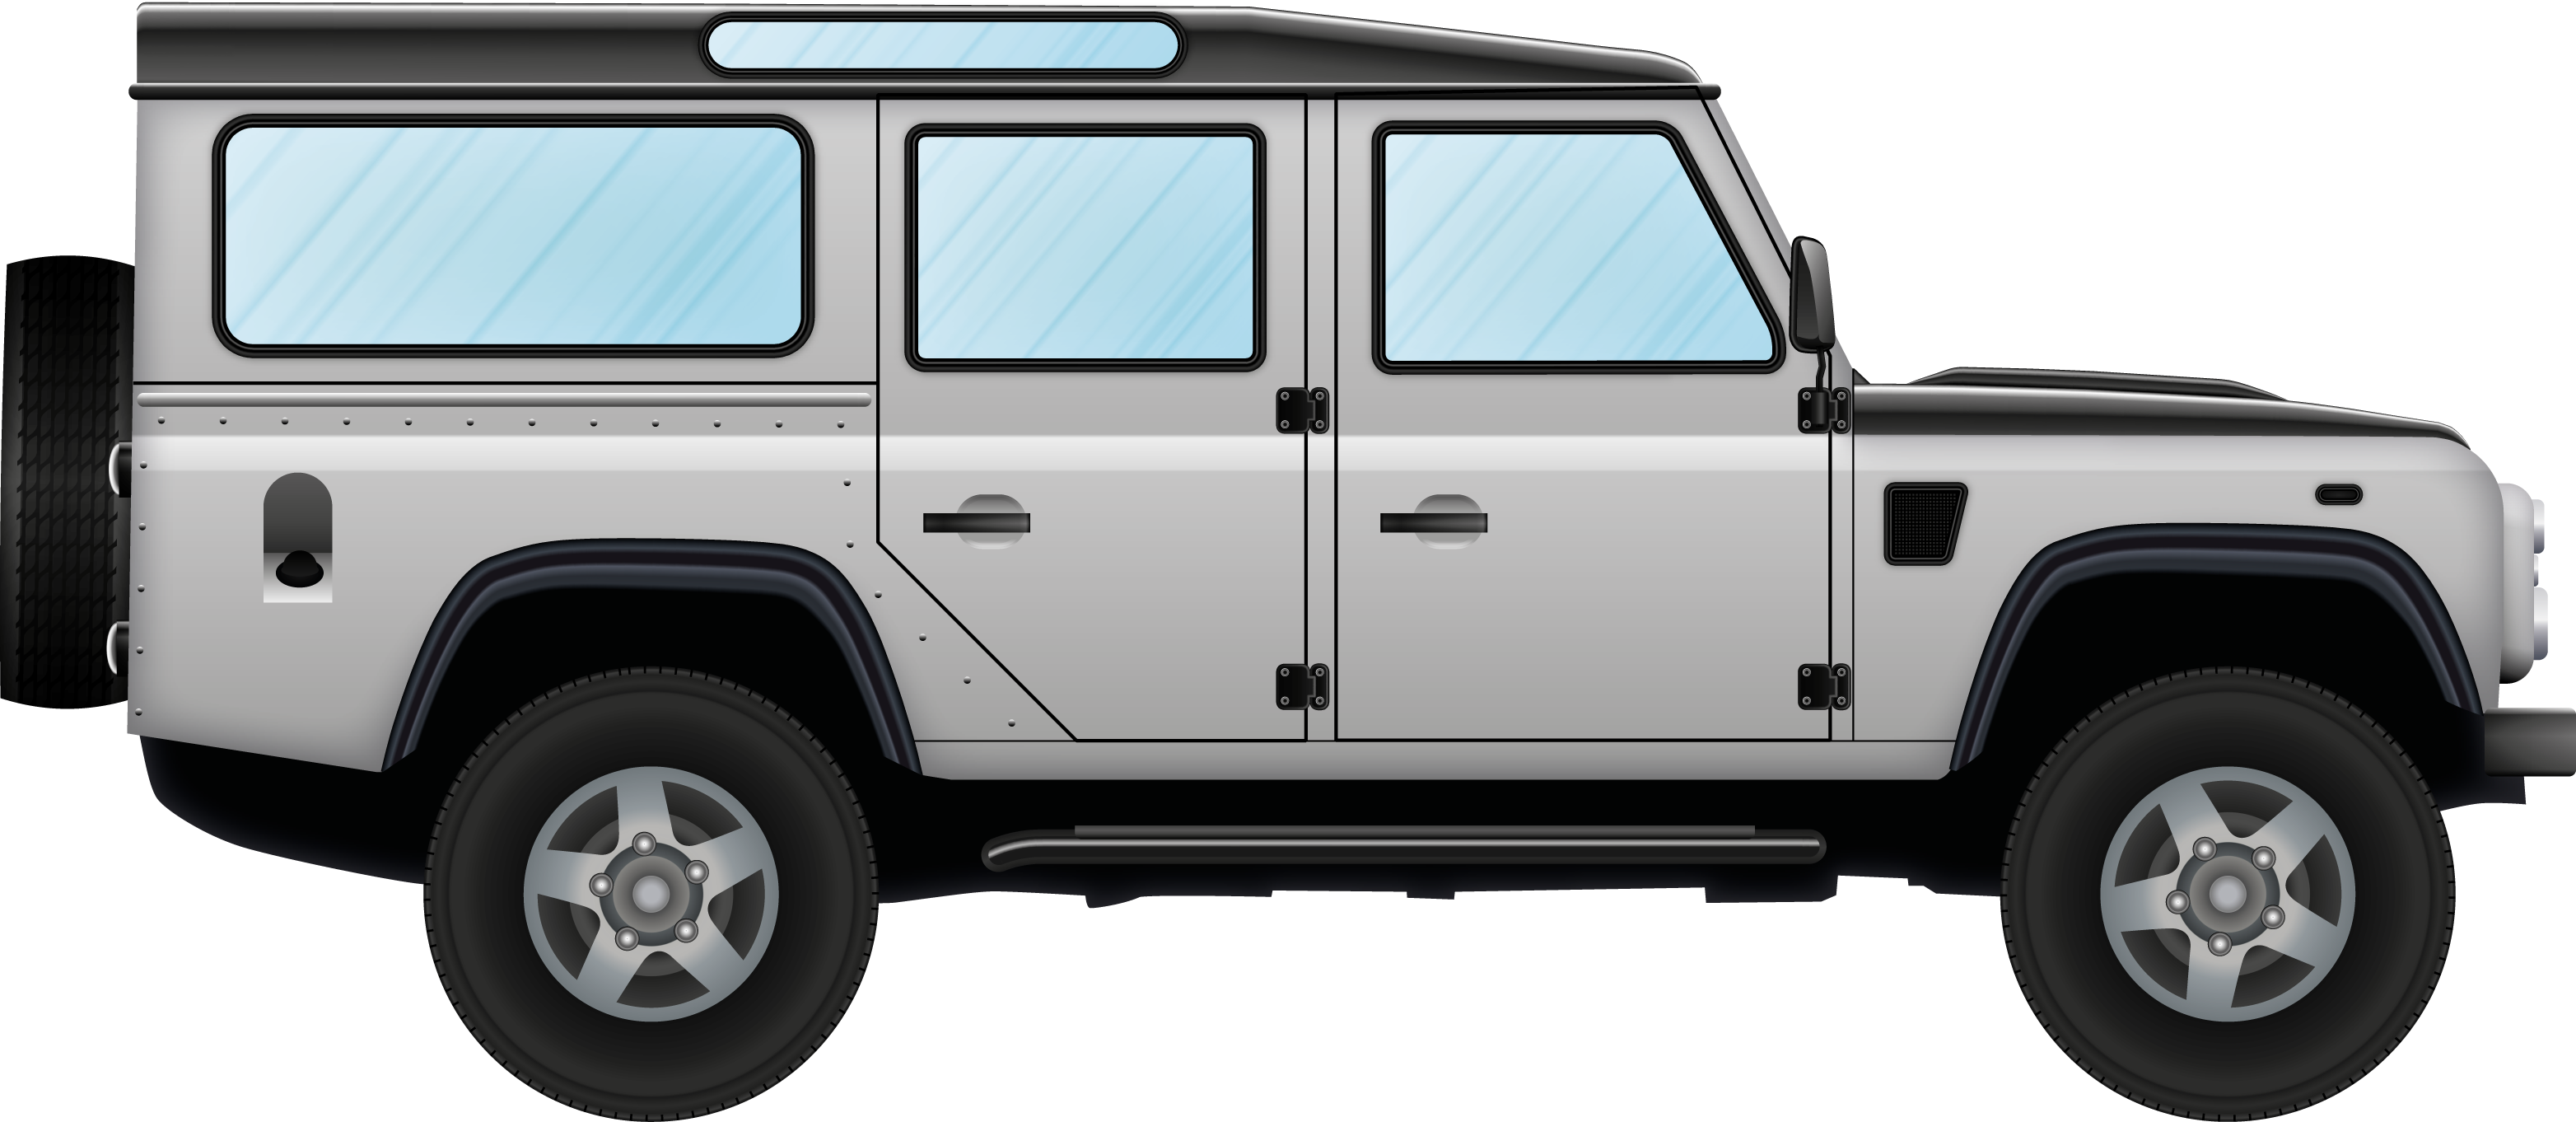 File Illustration Of On Off Road Automobile Png